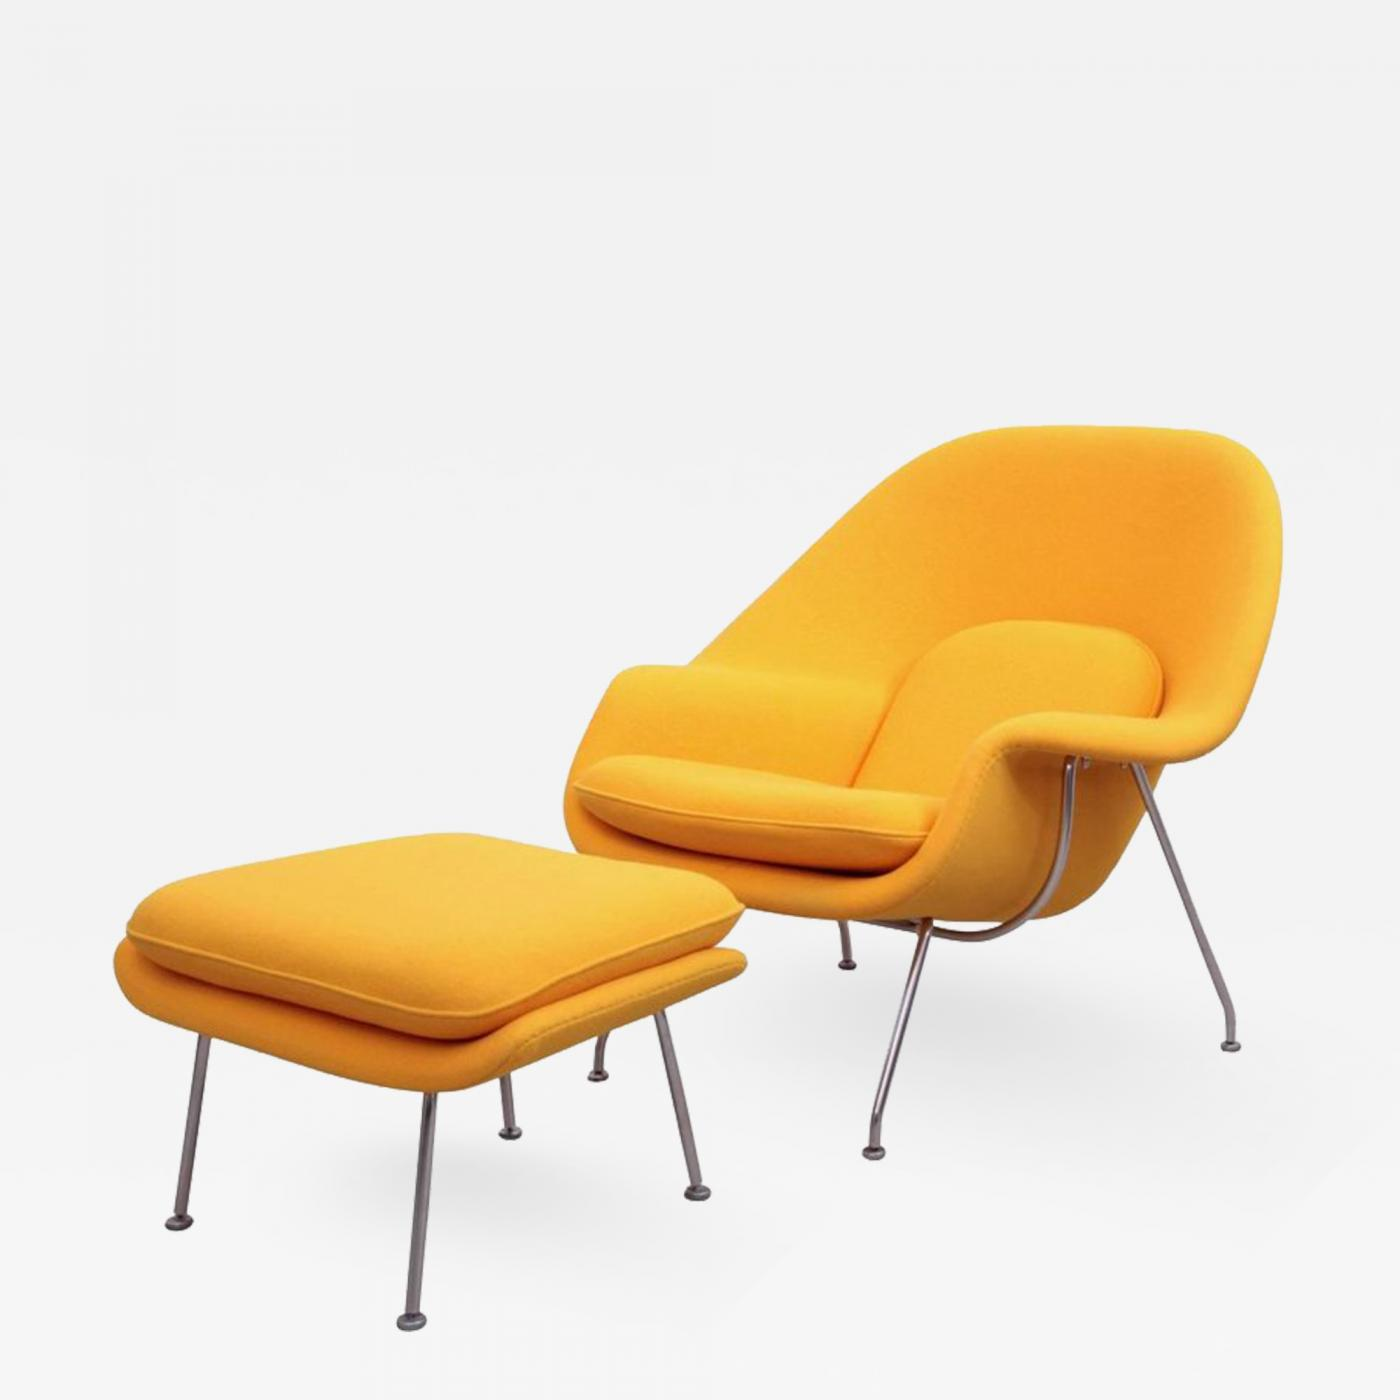 Listings / Furniture / Seating / Lounge Chairs · Eero Saarinen Eero  Saarinen Womb ...